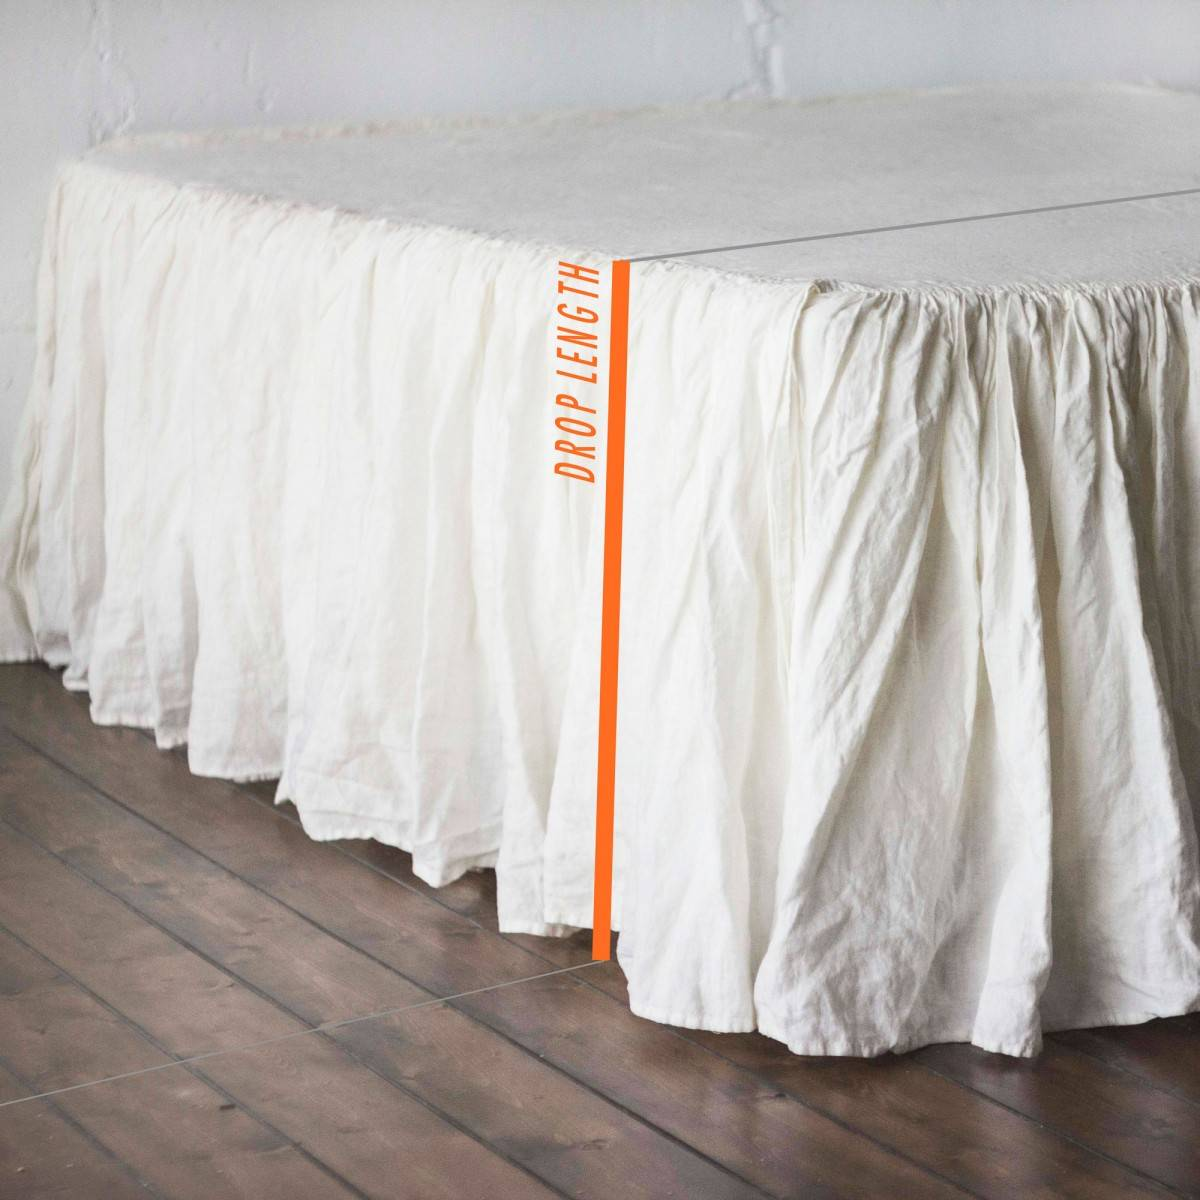 Bed Skirt Measurements